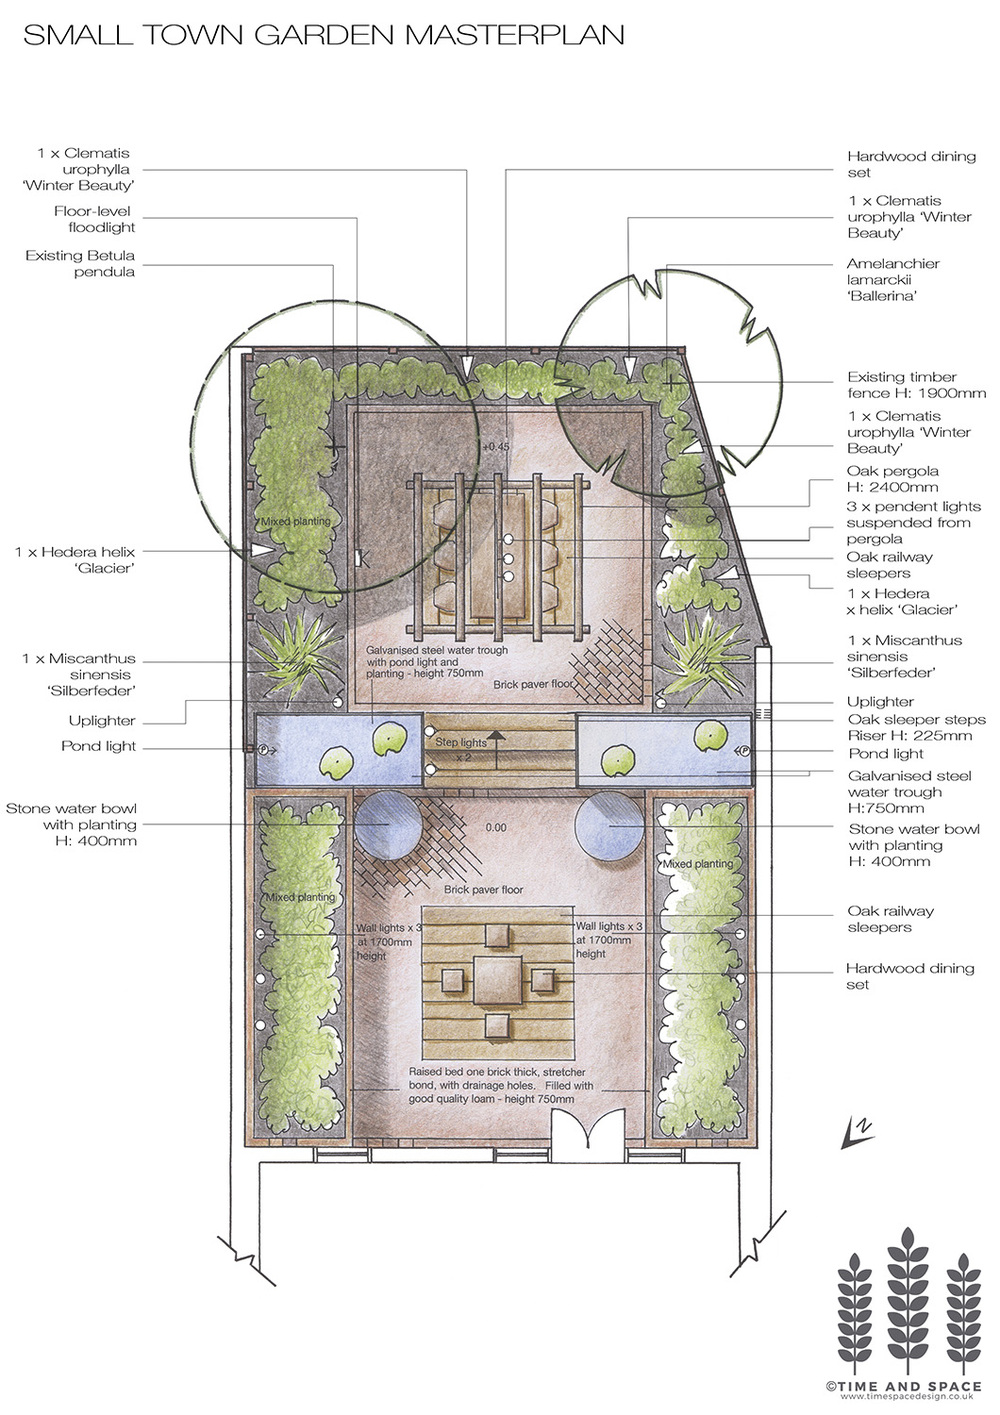 Portfolio time and space garden and planting design york for Garden design york uk